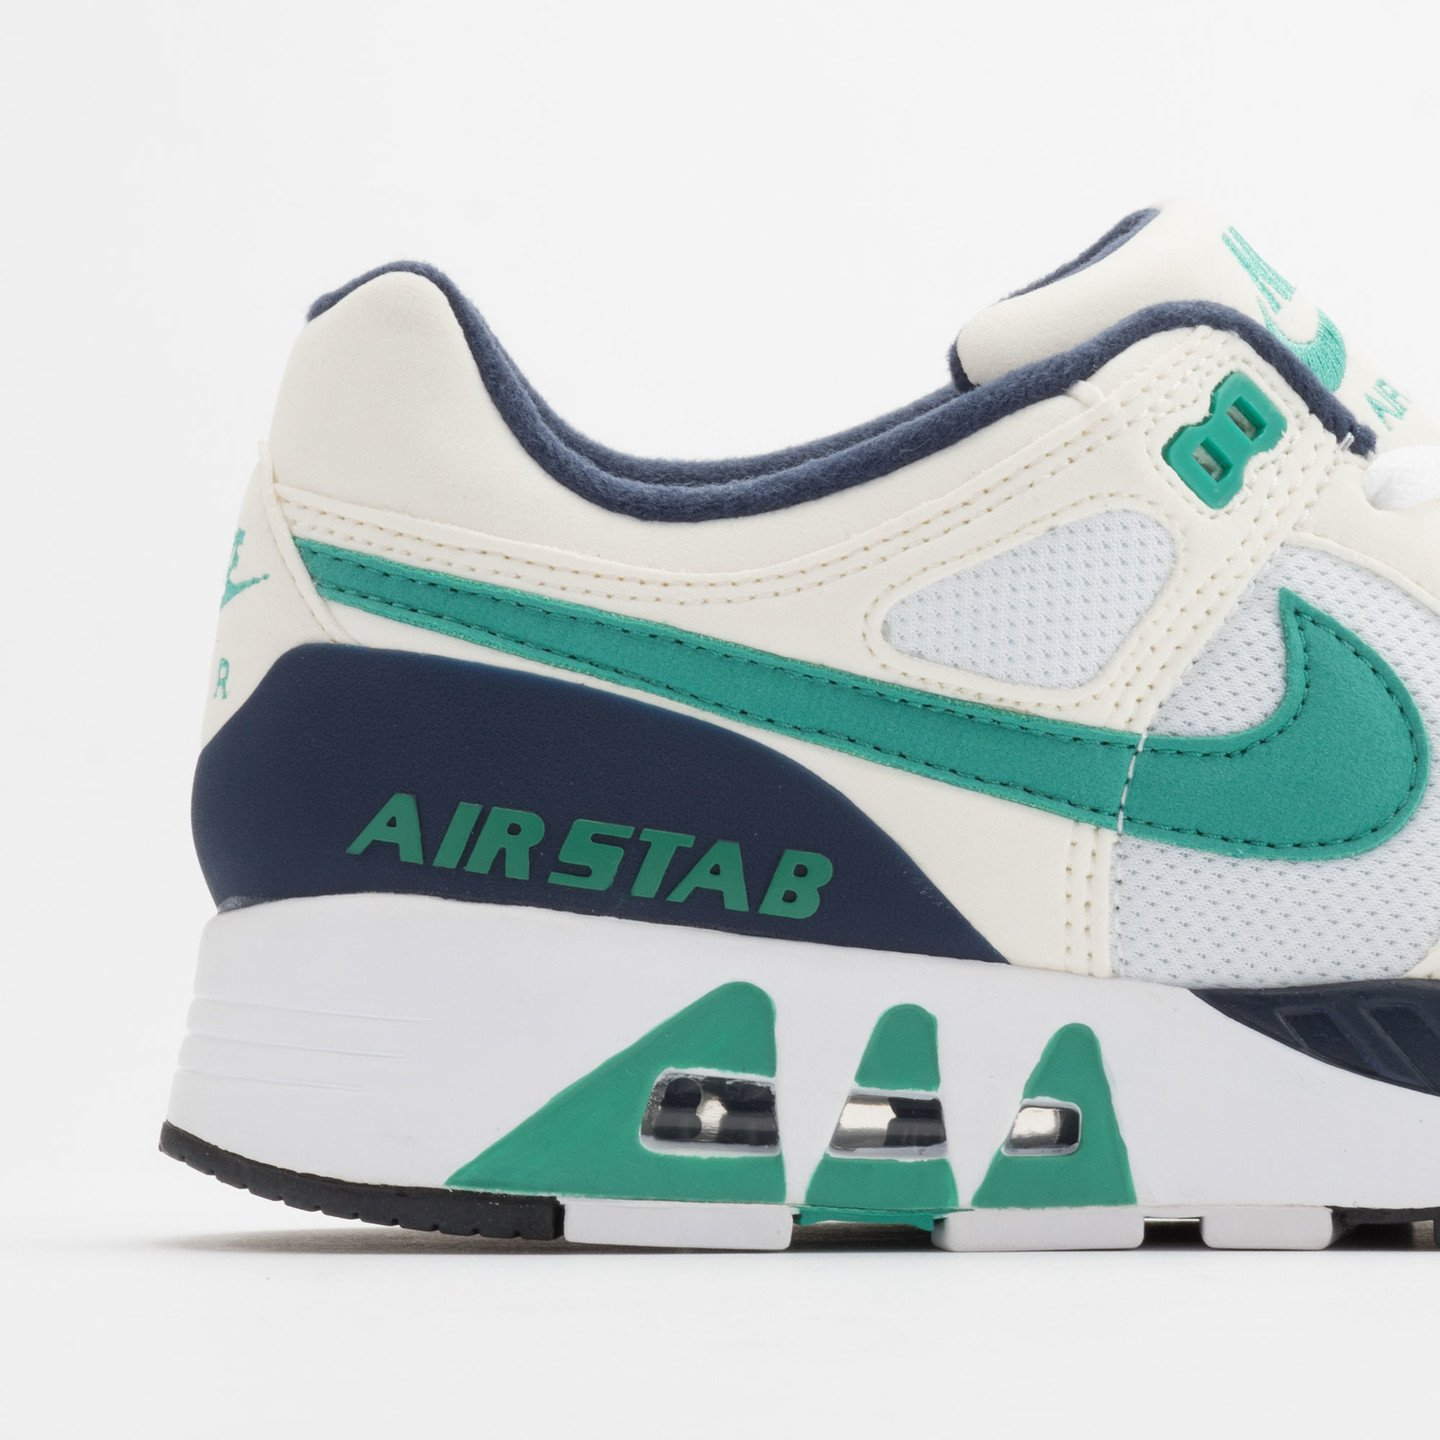 Nike Air Stab White/Emerald Green-Sl-Mid Nvy 312451-100-39